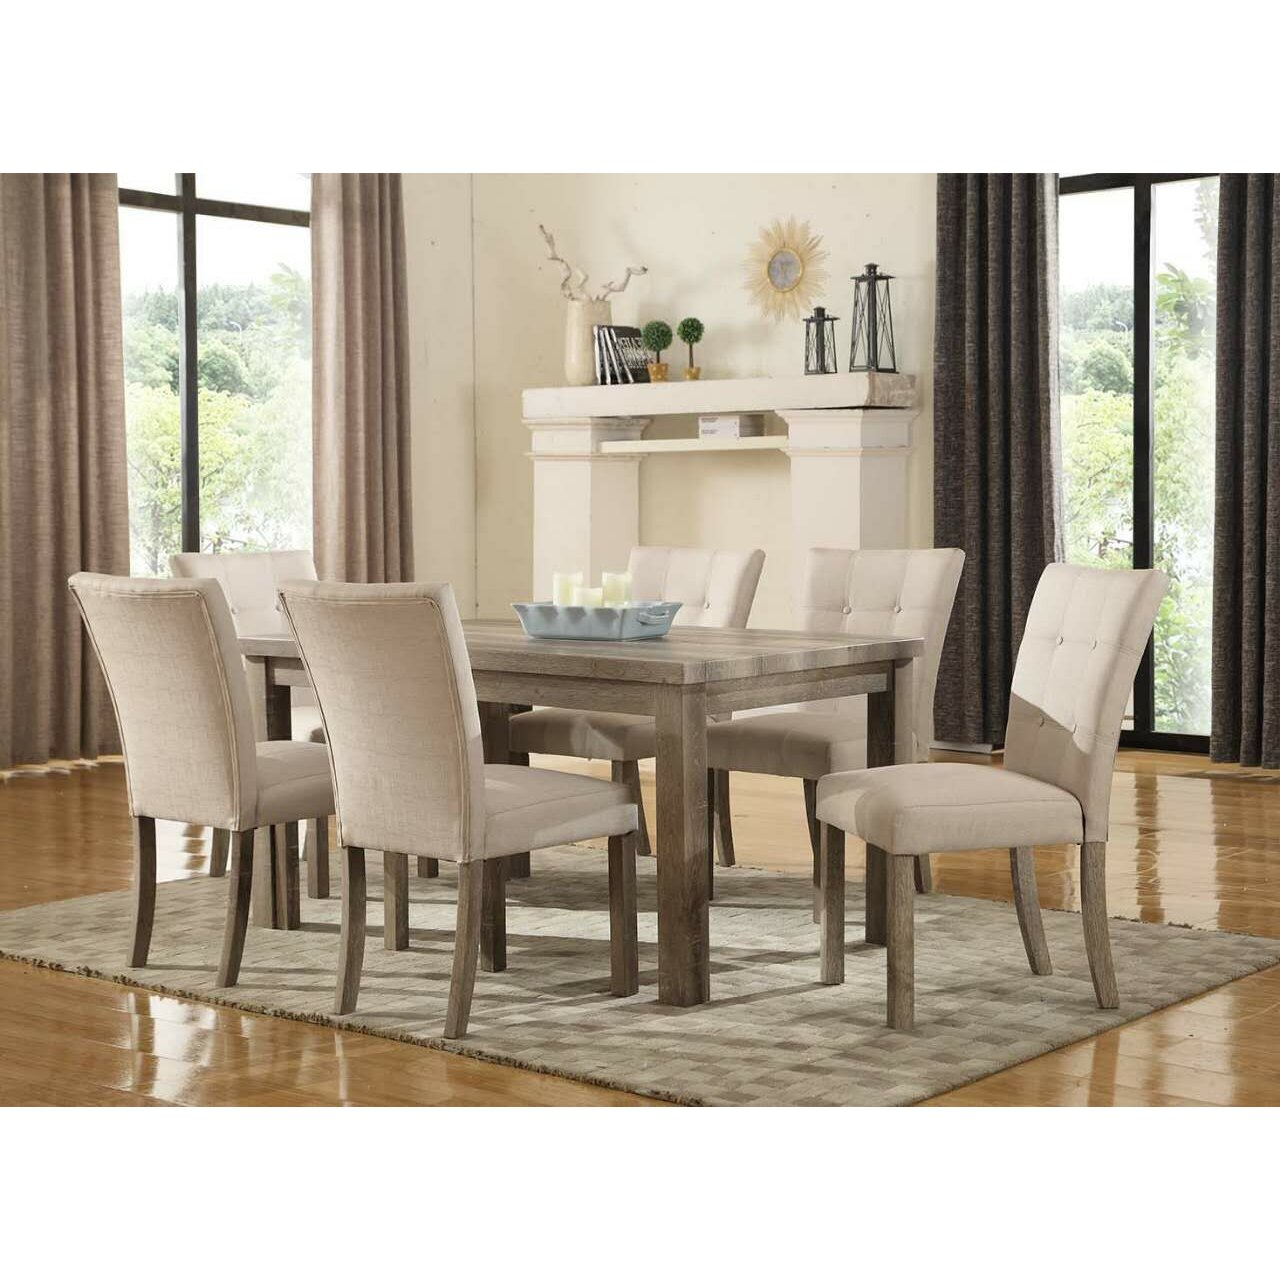 Ashley Furniture Bedroom Suites Ultimate Accents Urban 7 Piece Dining Set Amp Reviews Wayfair